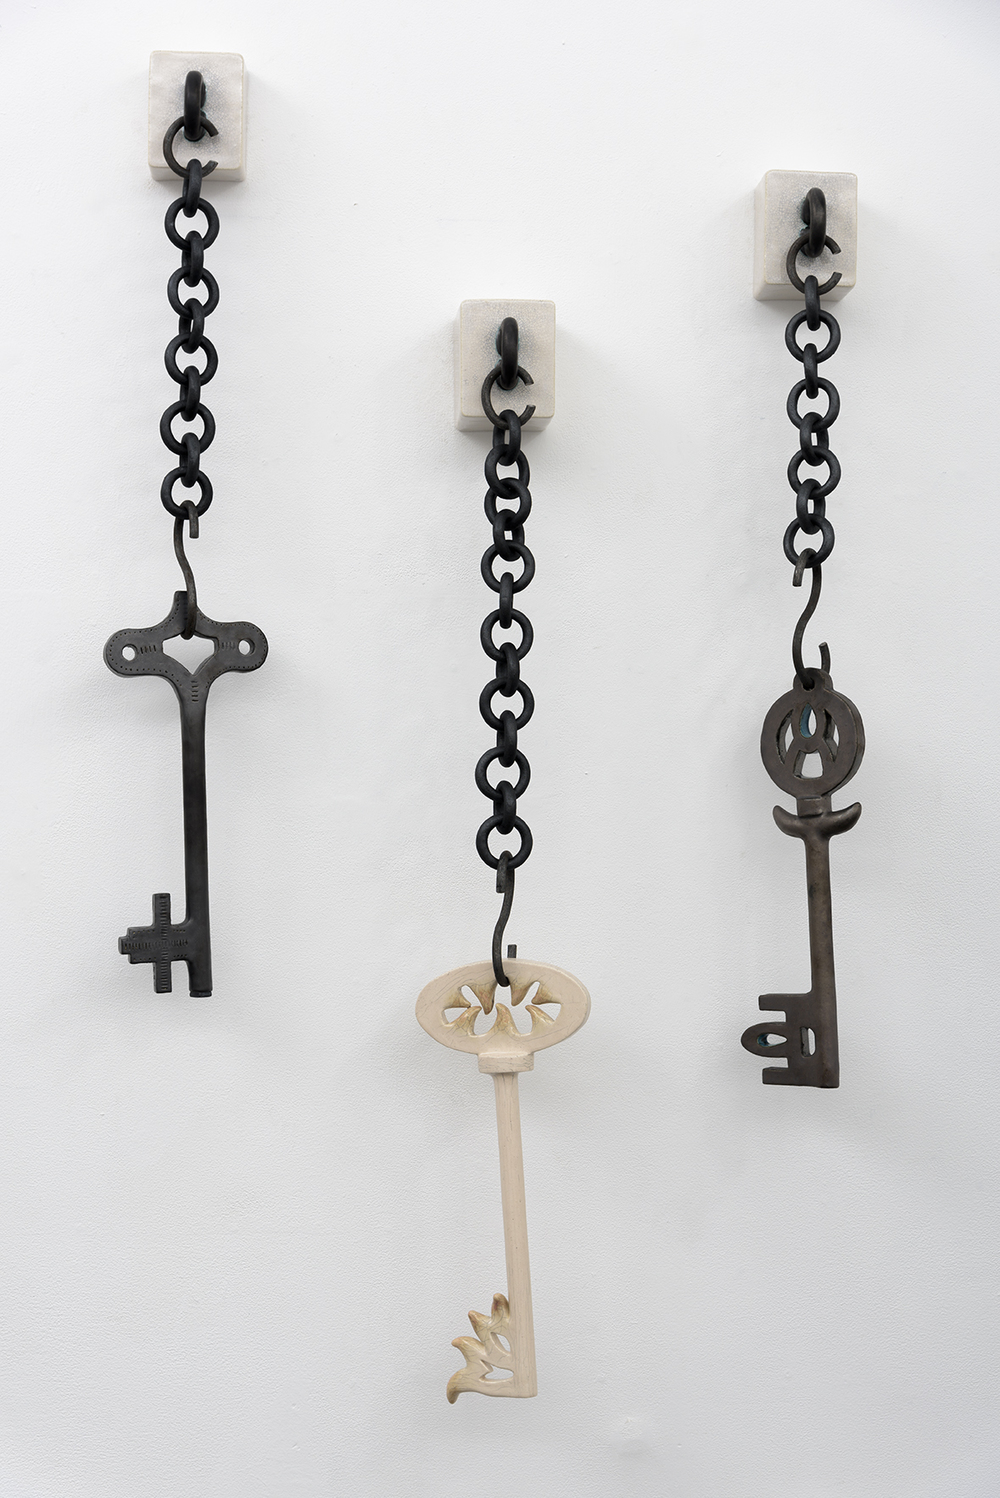 Elizabeth Orleans   (Left to Right)   Wind up  , 2016: Box: 4.75 x 4 x 2.5 inches; Key: 16.5 x 7 x .75 inches   Vesta  , 2016: Box: 4 x 4.75 x 4 inches; Key: 17.5 x 1.75 x 7.38 inches   Volturnus  , 2016: Box: 4 x 4.75 x 3 inches; Key: 17 x 1.25 x 7.5 inches